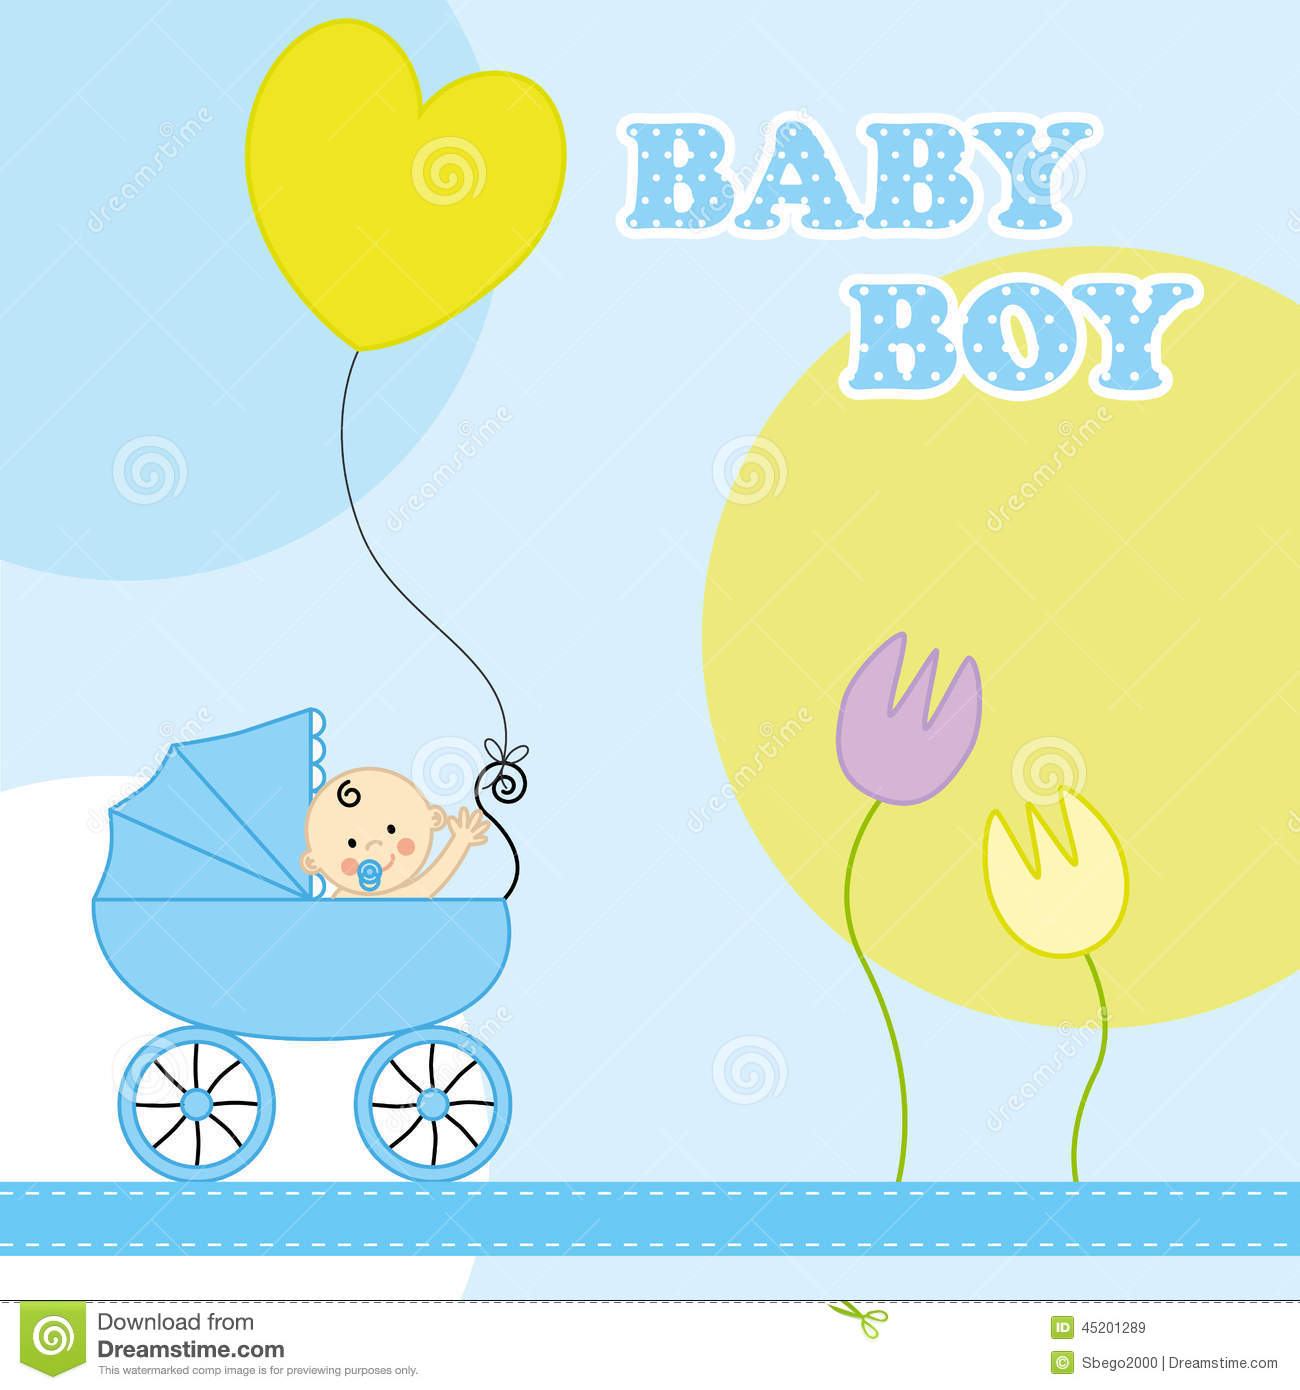 baby boy birthday card stock vector  image, Birthday card